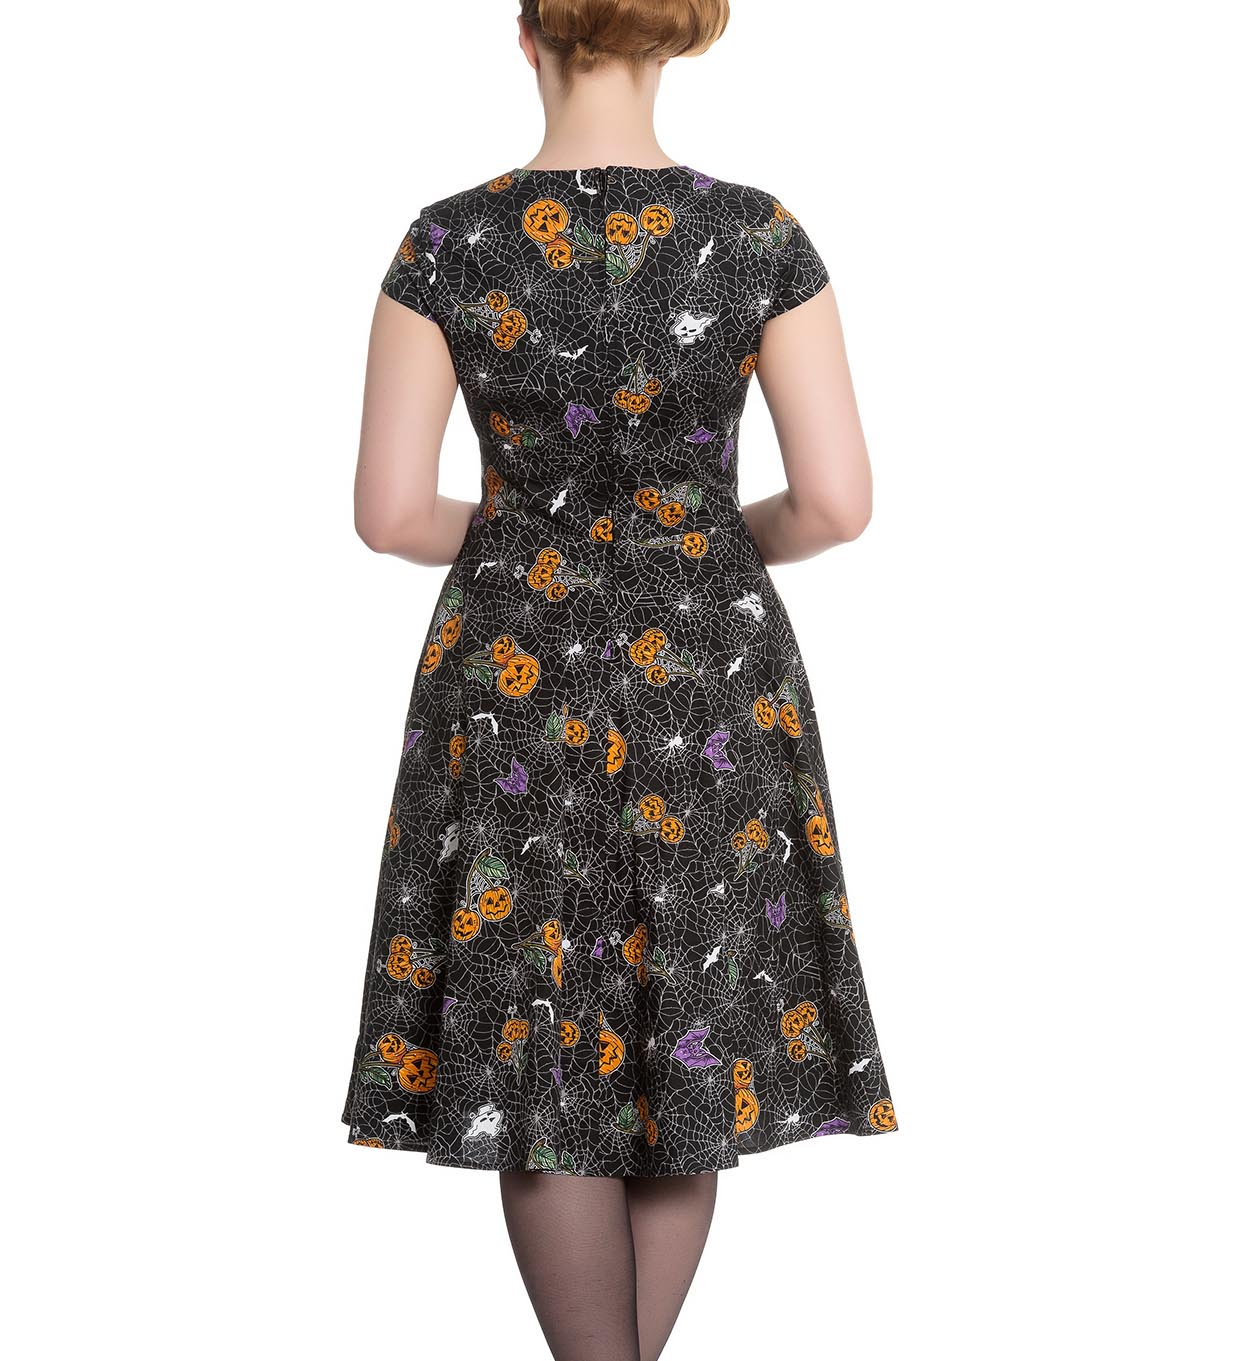 Hell-Bunny-Black-Pinup-50s-Goth-Webs-Dress-HARLOW-Halloween-All-Sizes thumbnail 25